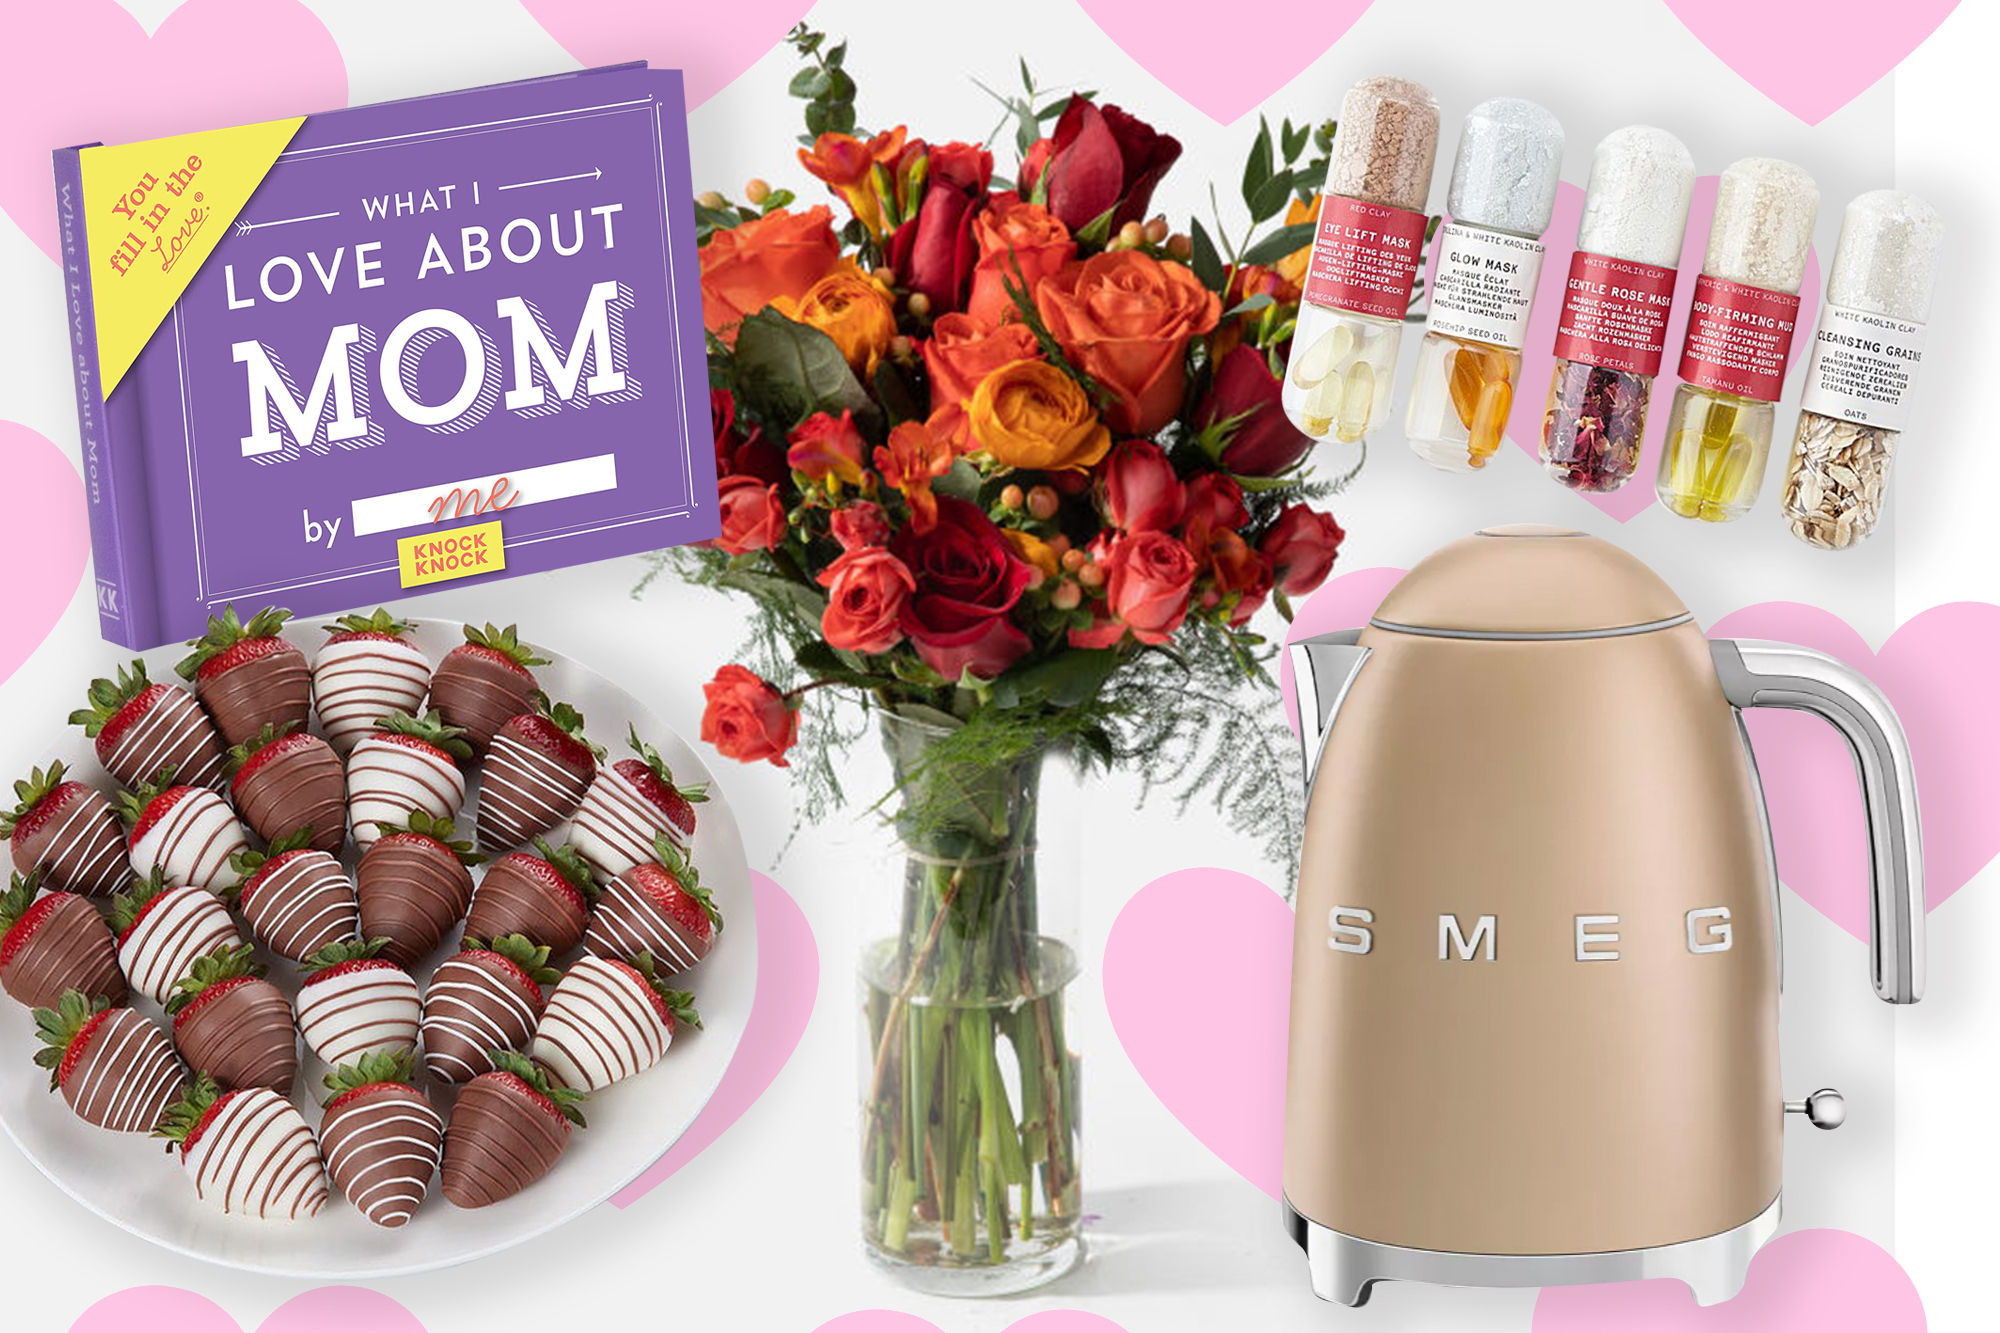 Cute Valentines Gift For Mom Valentines Day Gift For Mom Valentines Gift Idea for Mom Mom Valentines Gift Gift for Mom From Daughter